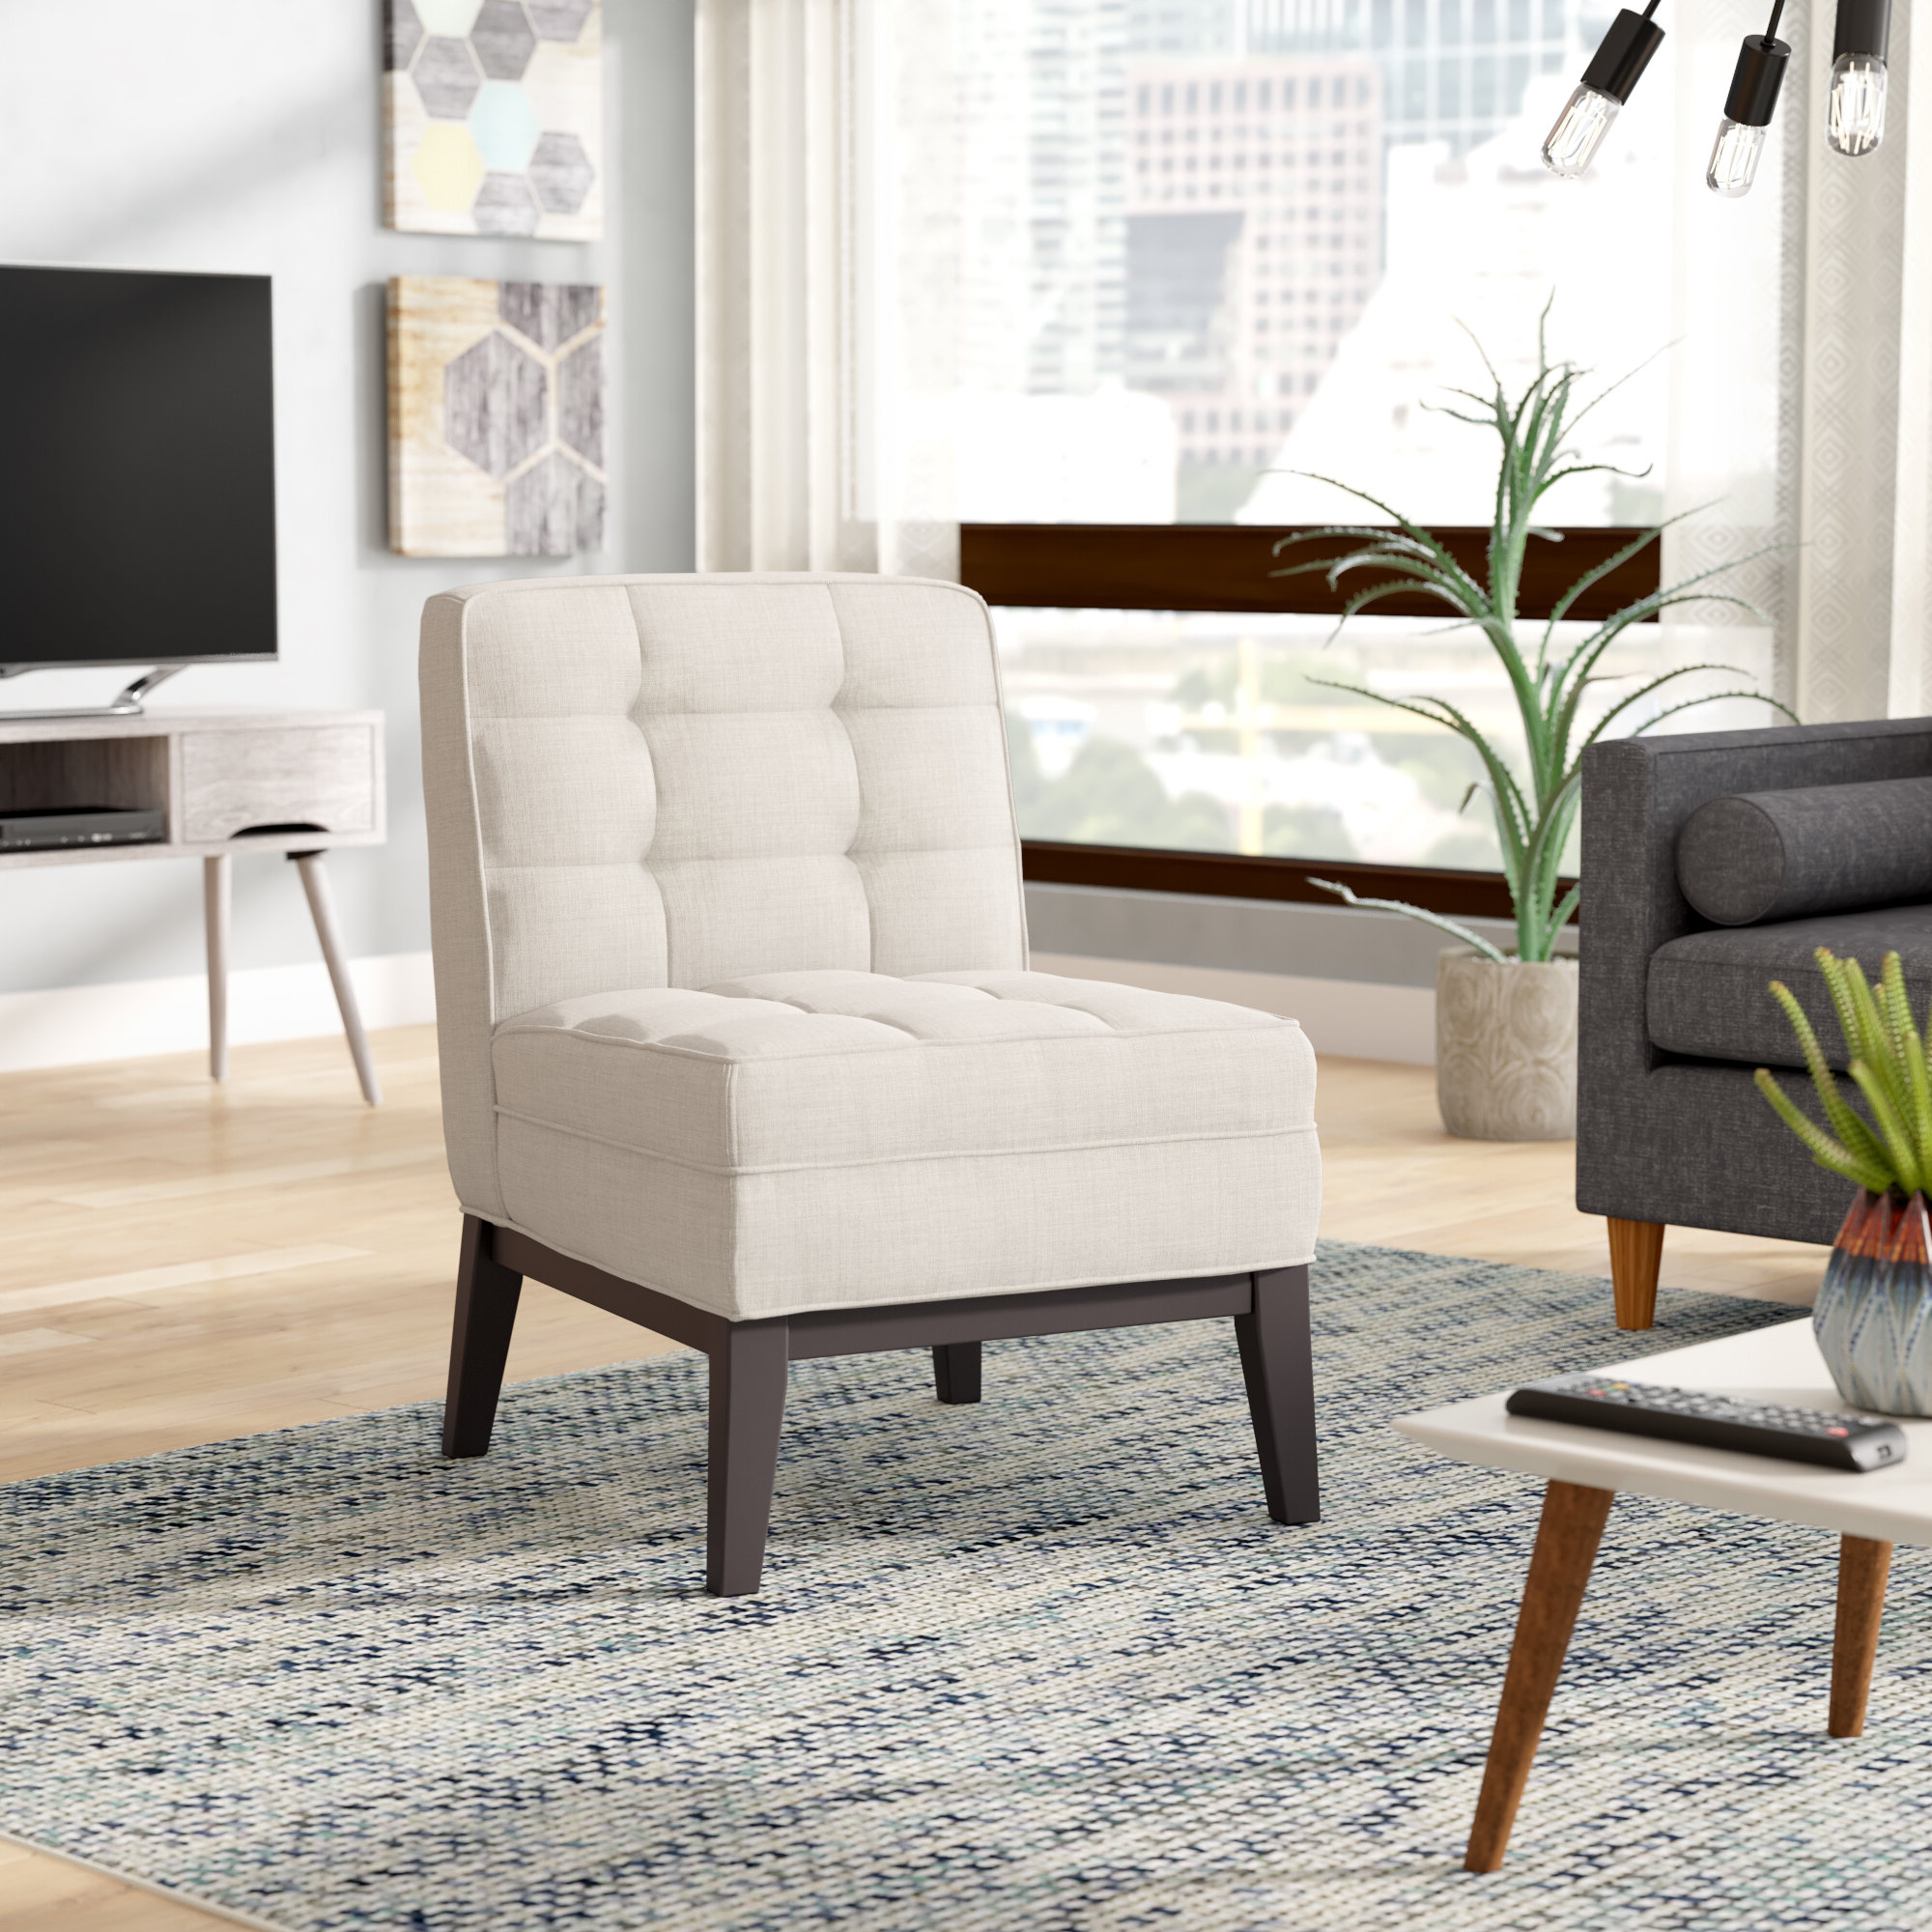 Wayfair With Regard To Most Recently Released Alush Accent Slipper Chairs (set Of 2) (View 11 of 20)